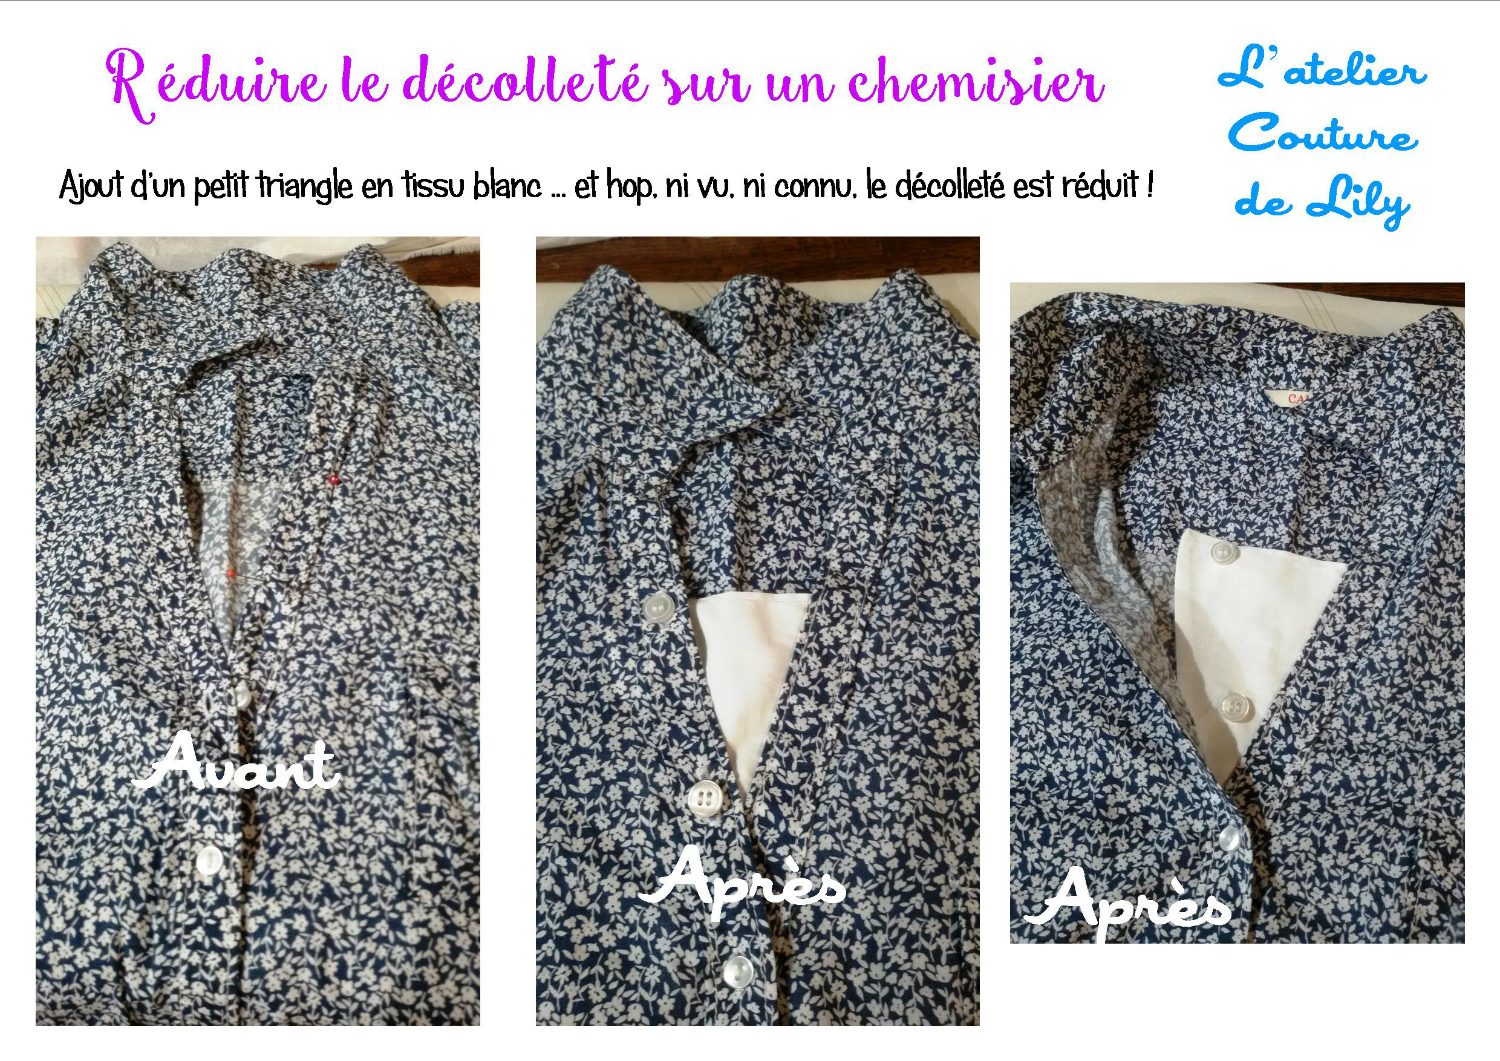 Retouche encolure chemisier